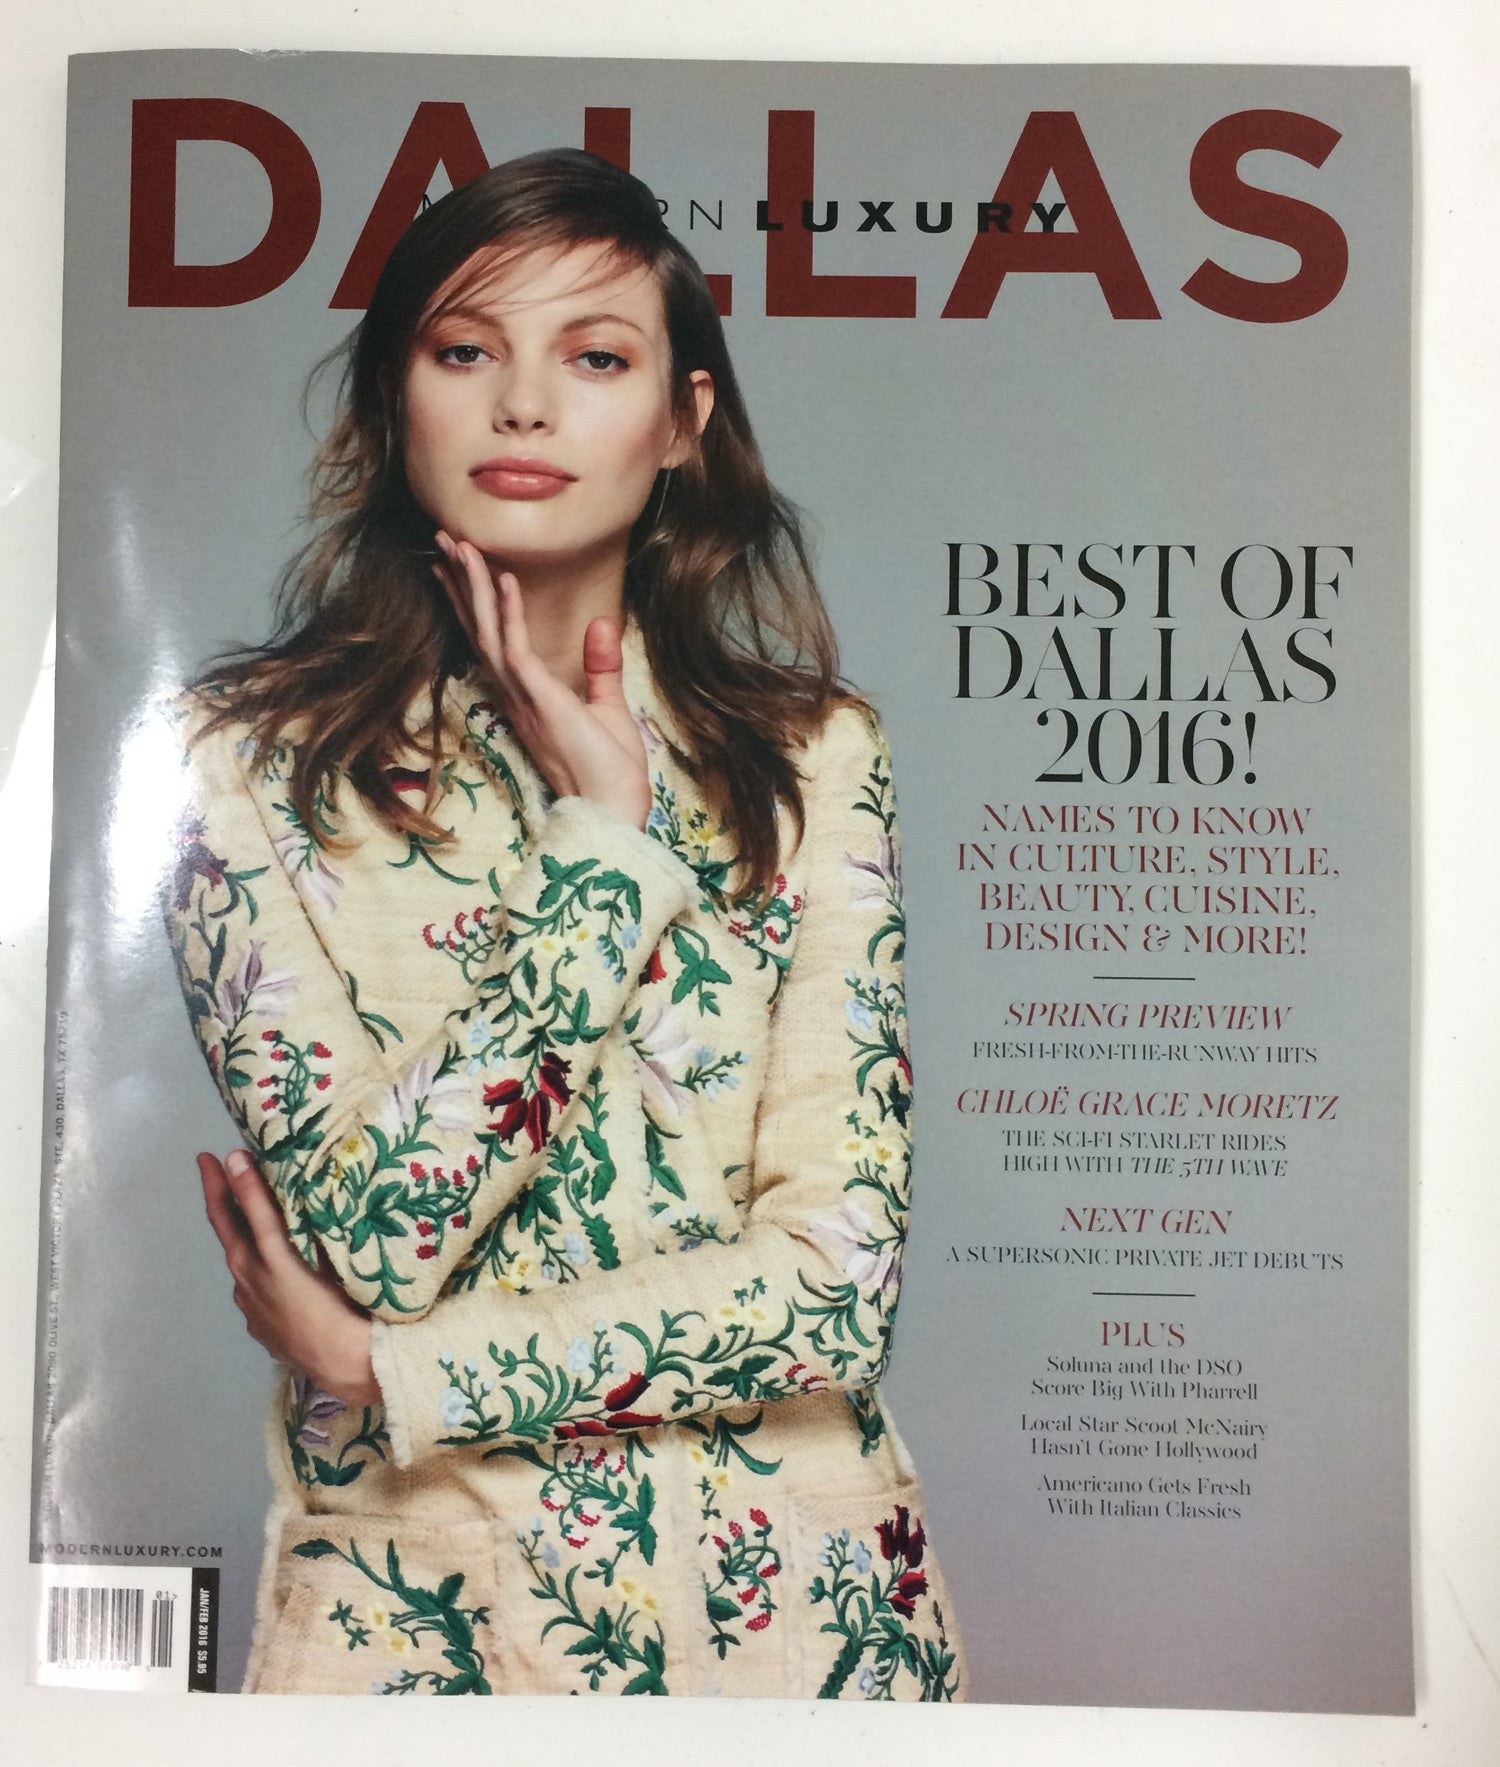 Dallas Modern Luxury magazine cover with beautiful woman in floral-print dress, words 'Best of Dallas 2016', and other topics